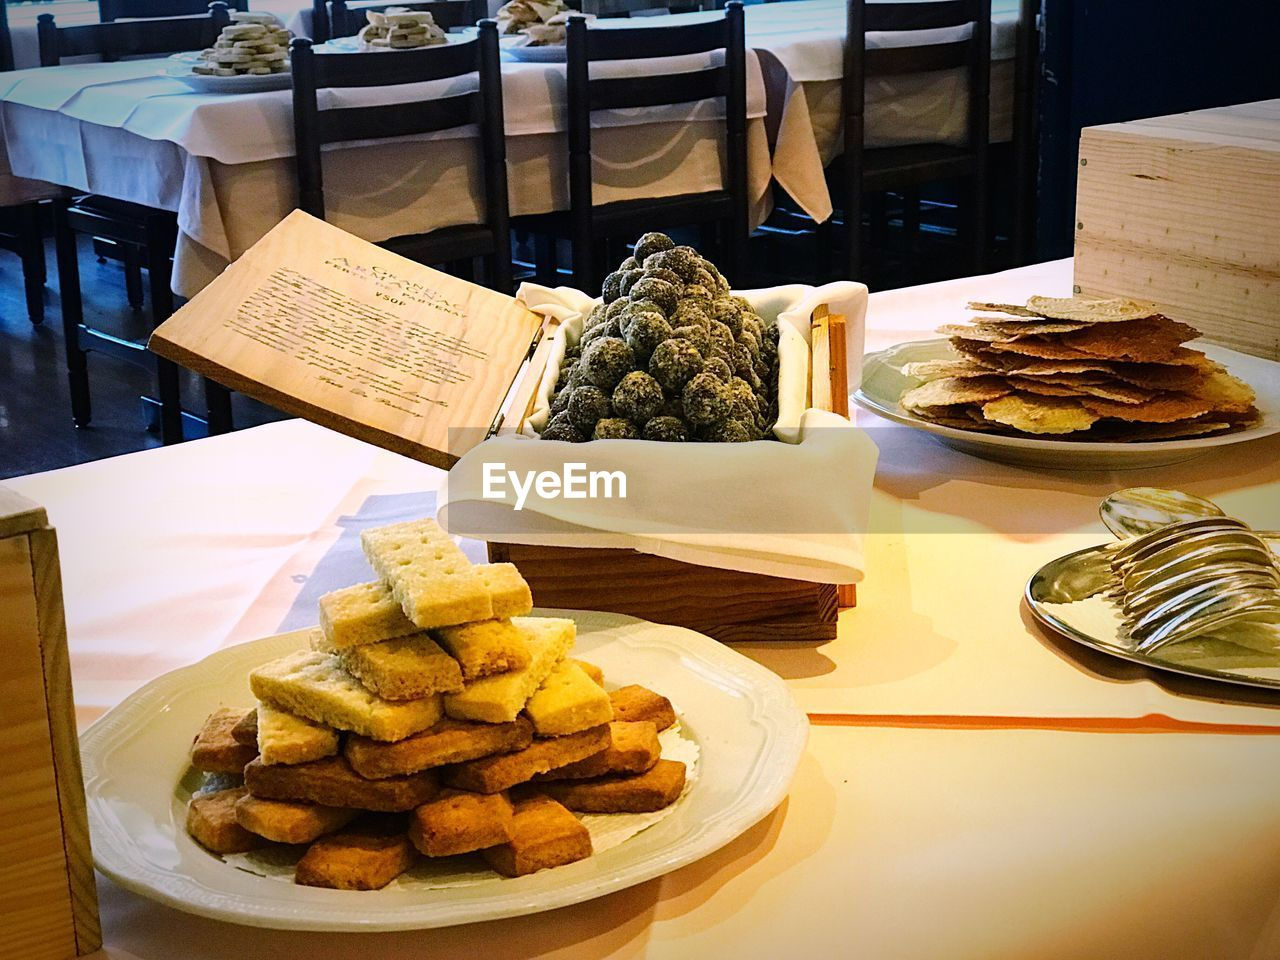 VARIETY OF FOOD IN TRAY ON TABLE